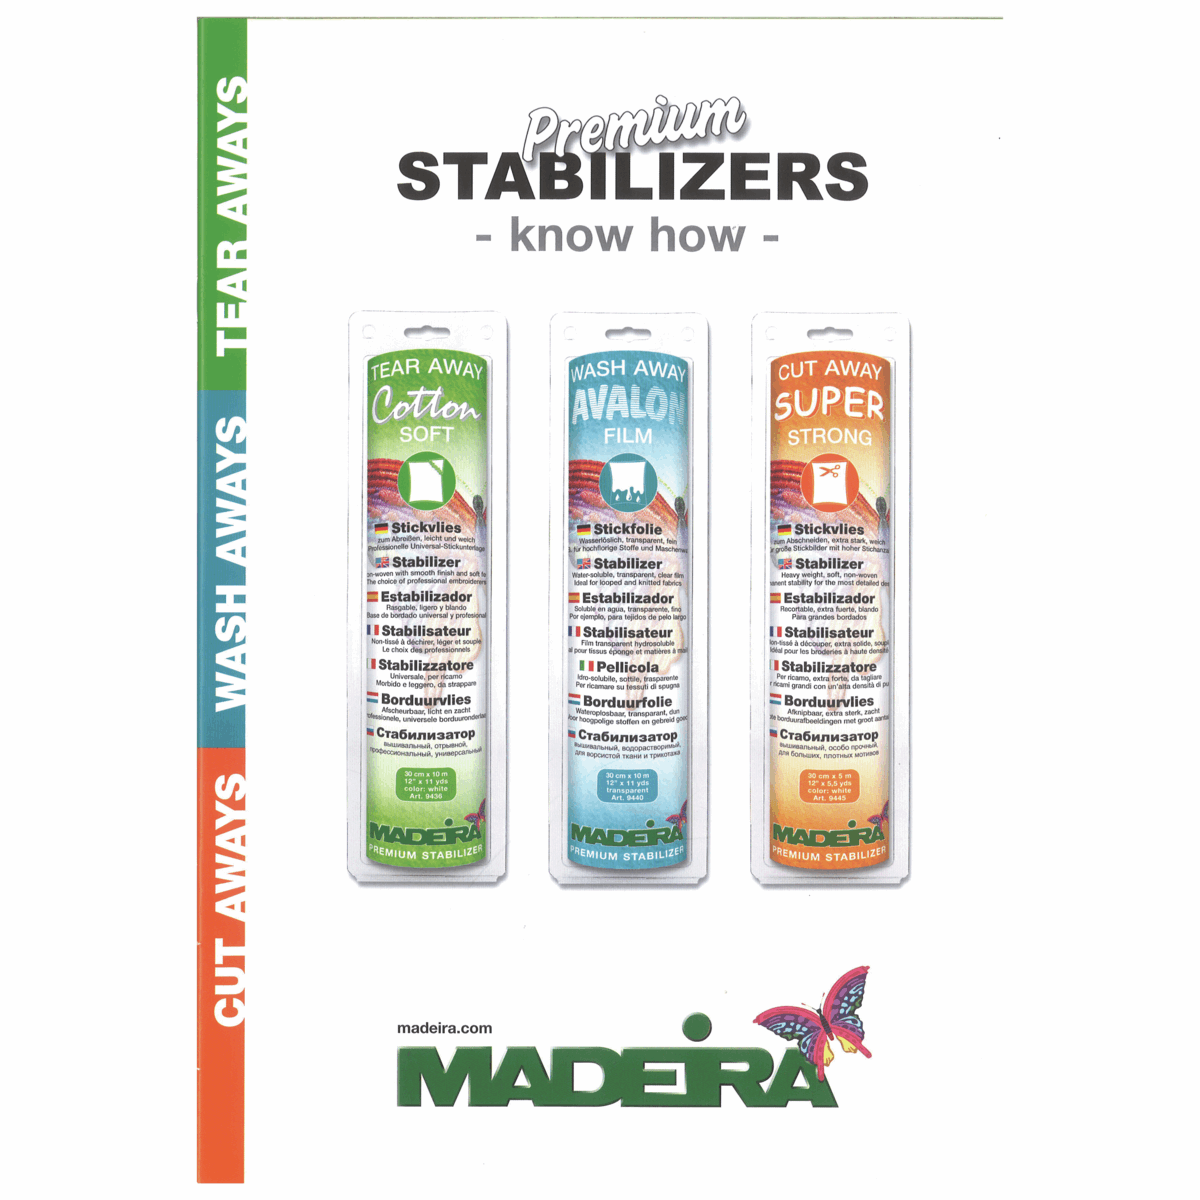 Madeira Premium Stabilizer Know How Brochure Cut,Tear & Wash Away